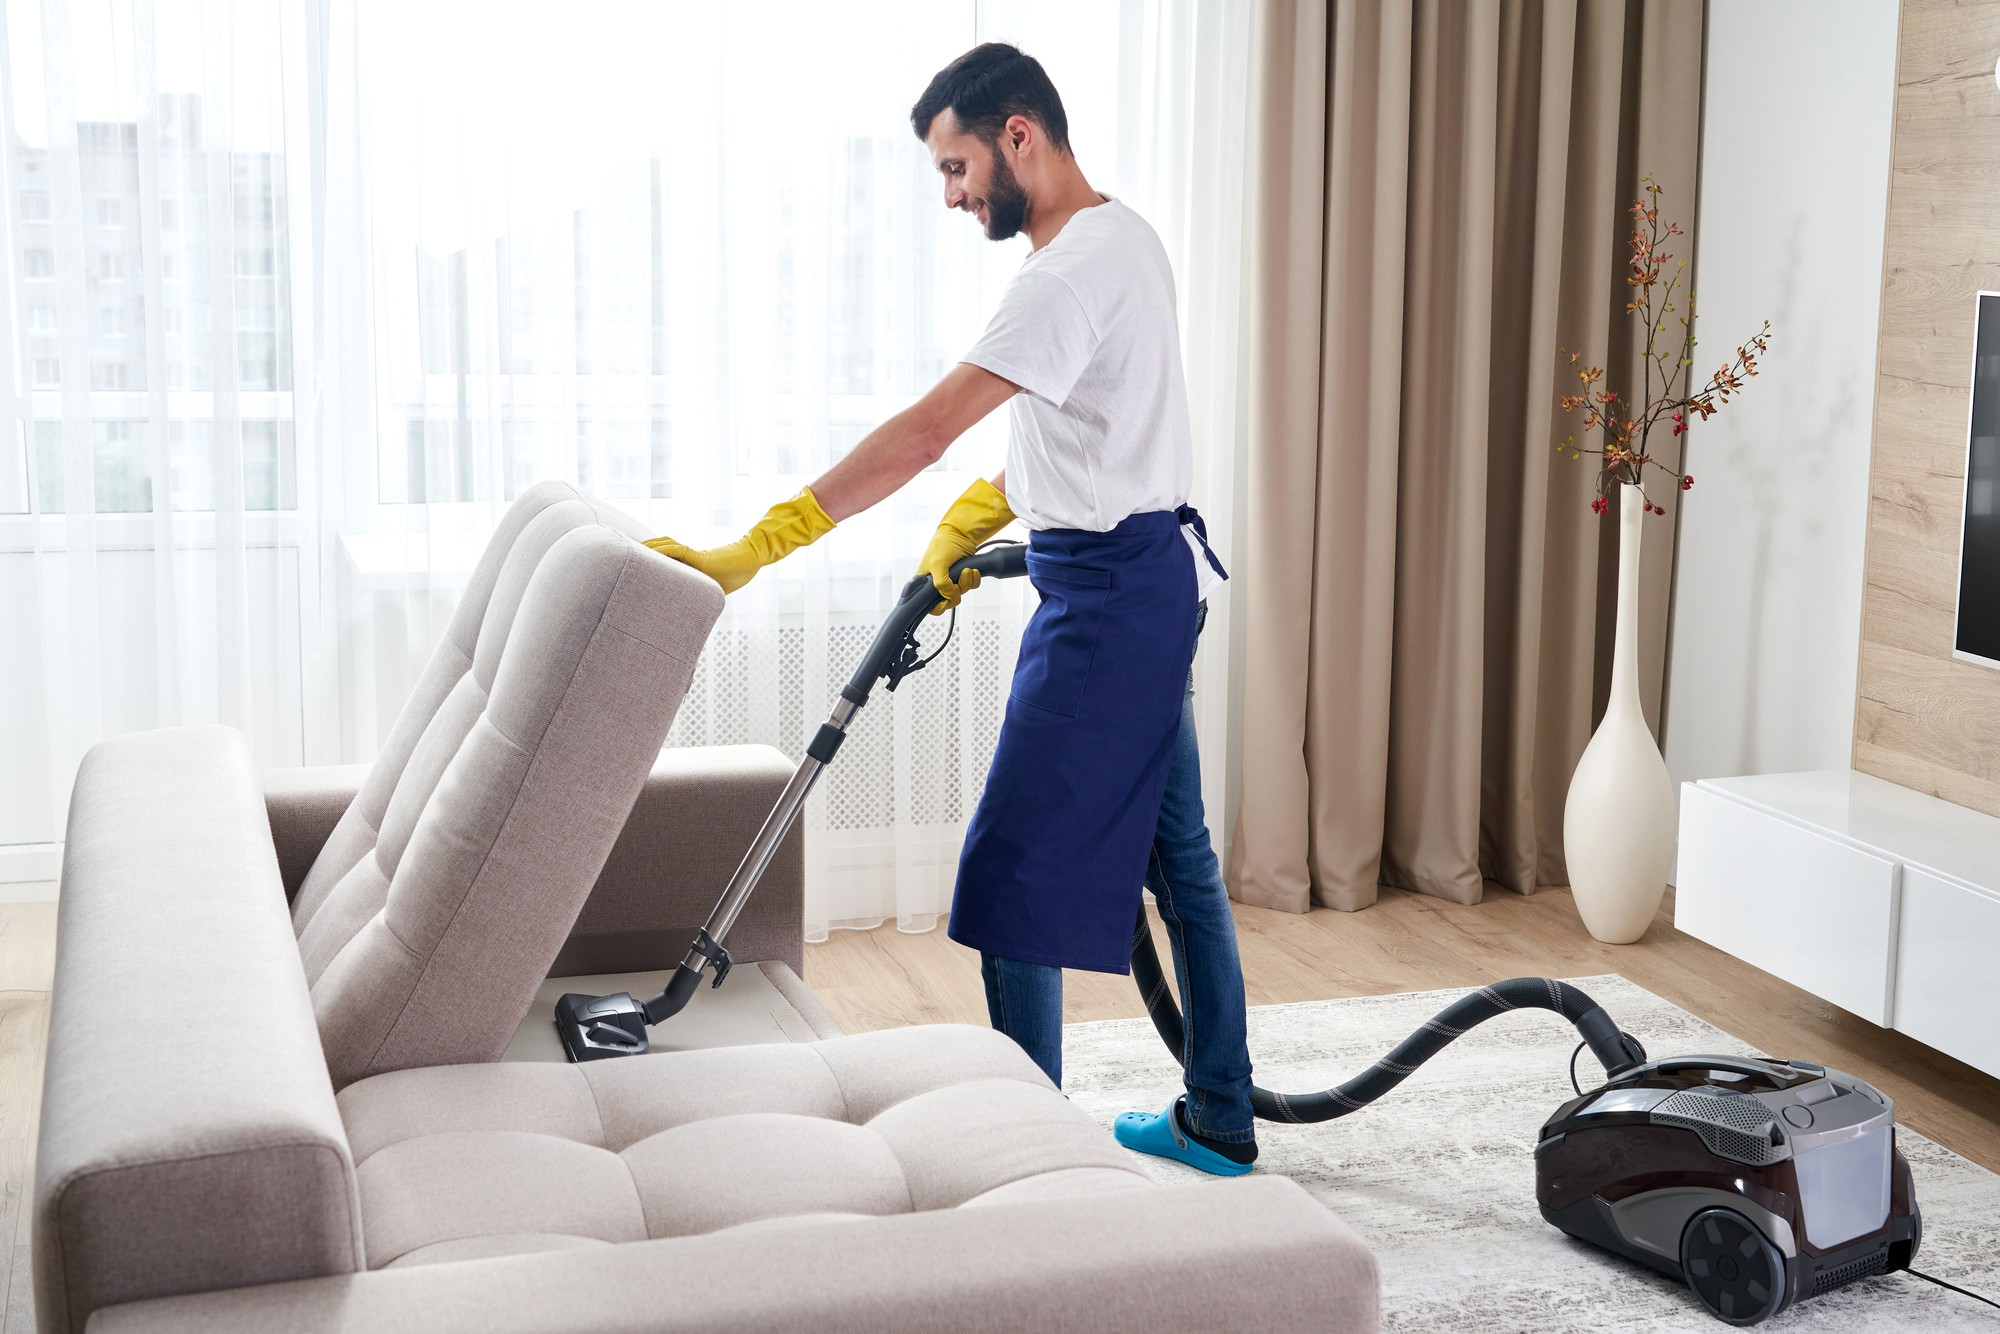 Man cleaning rug under sofa